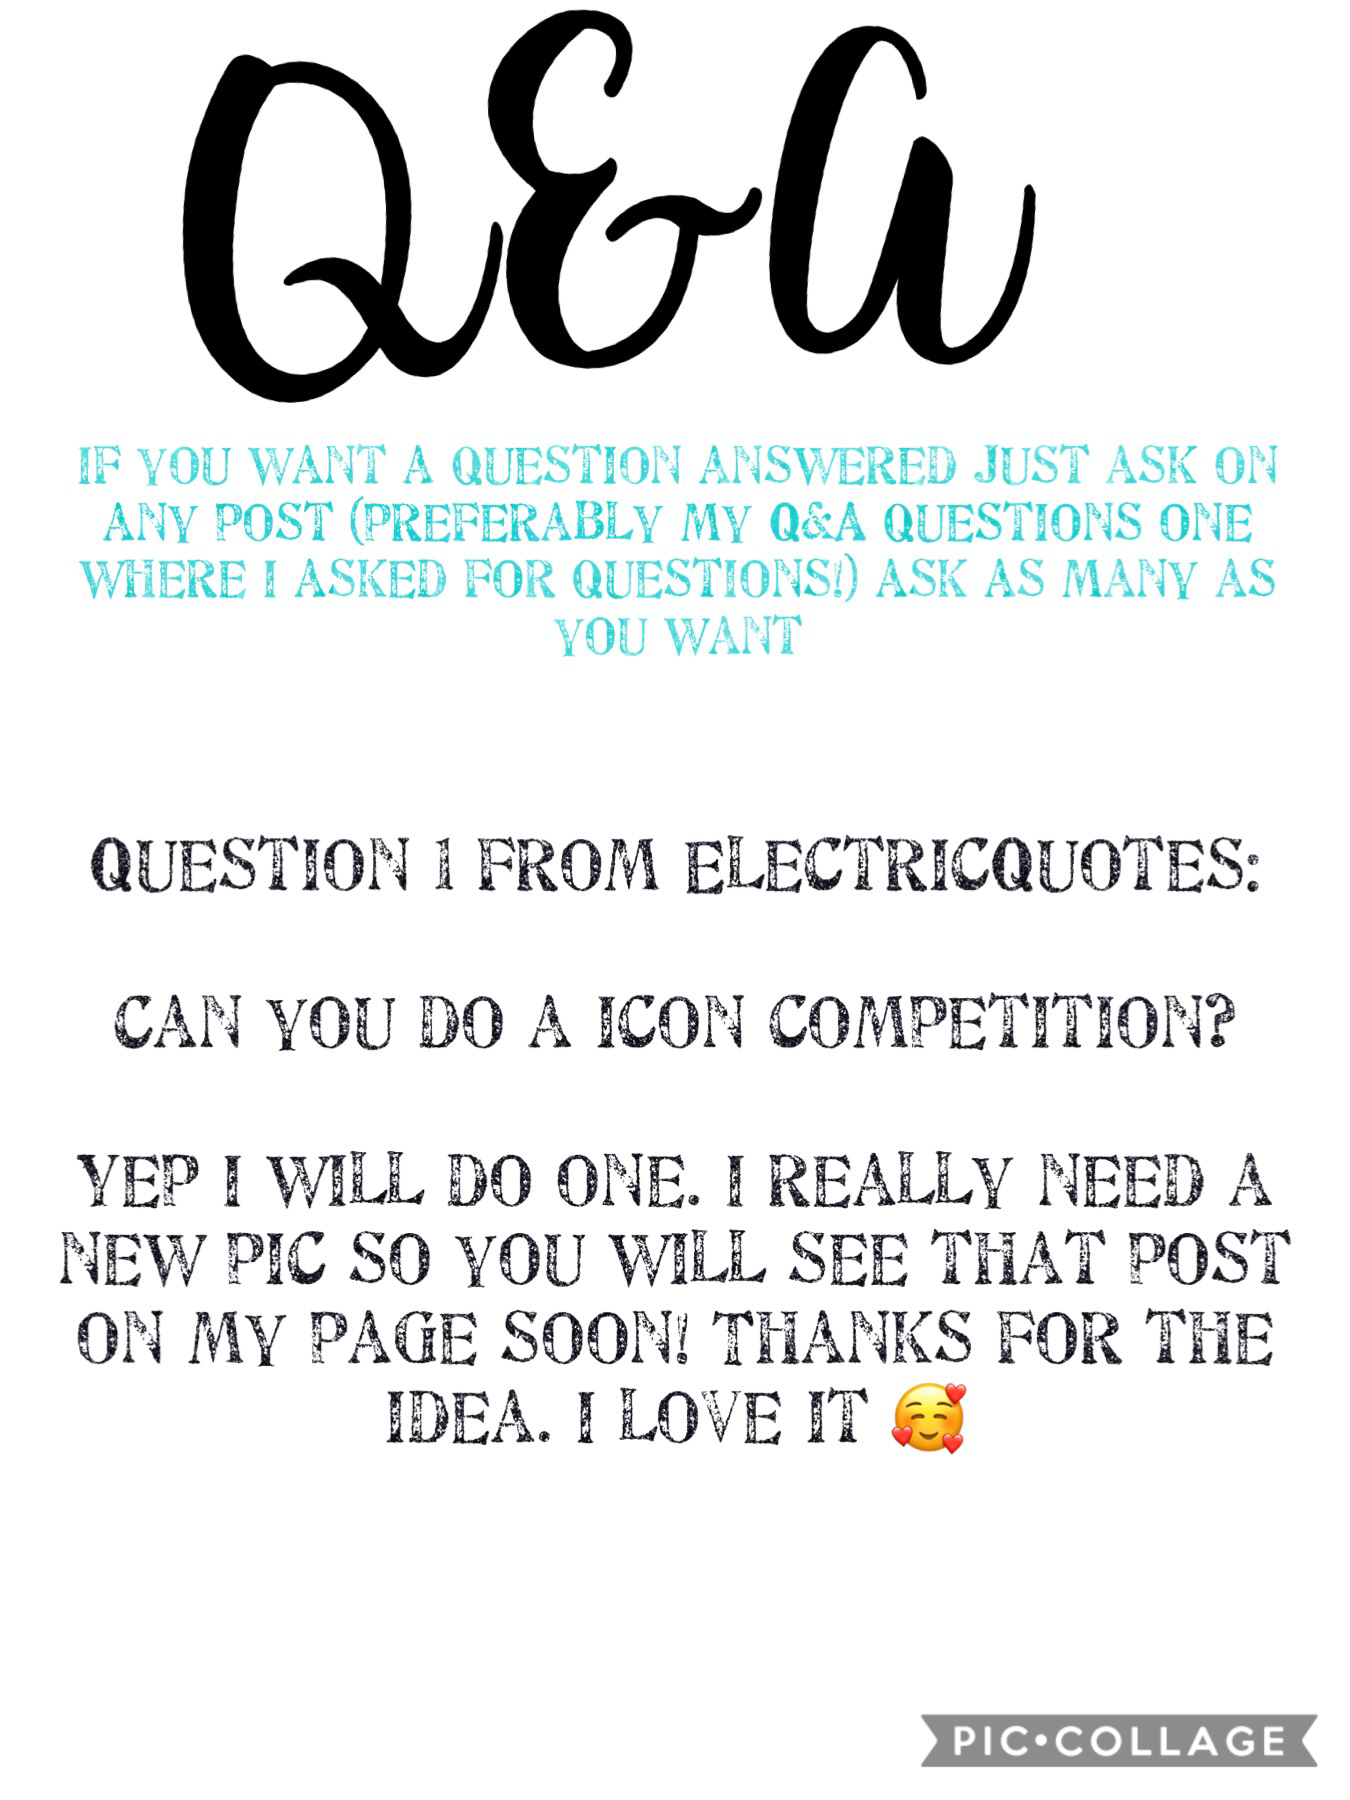 Thanks for the question ElectricQuotes